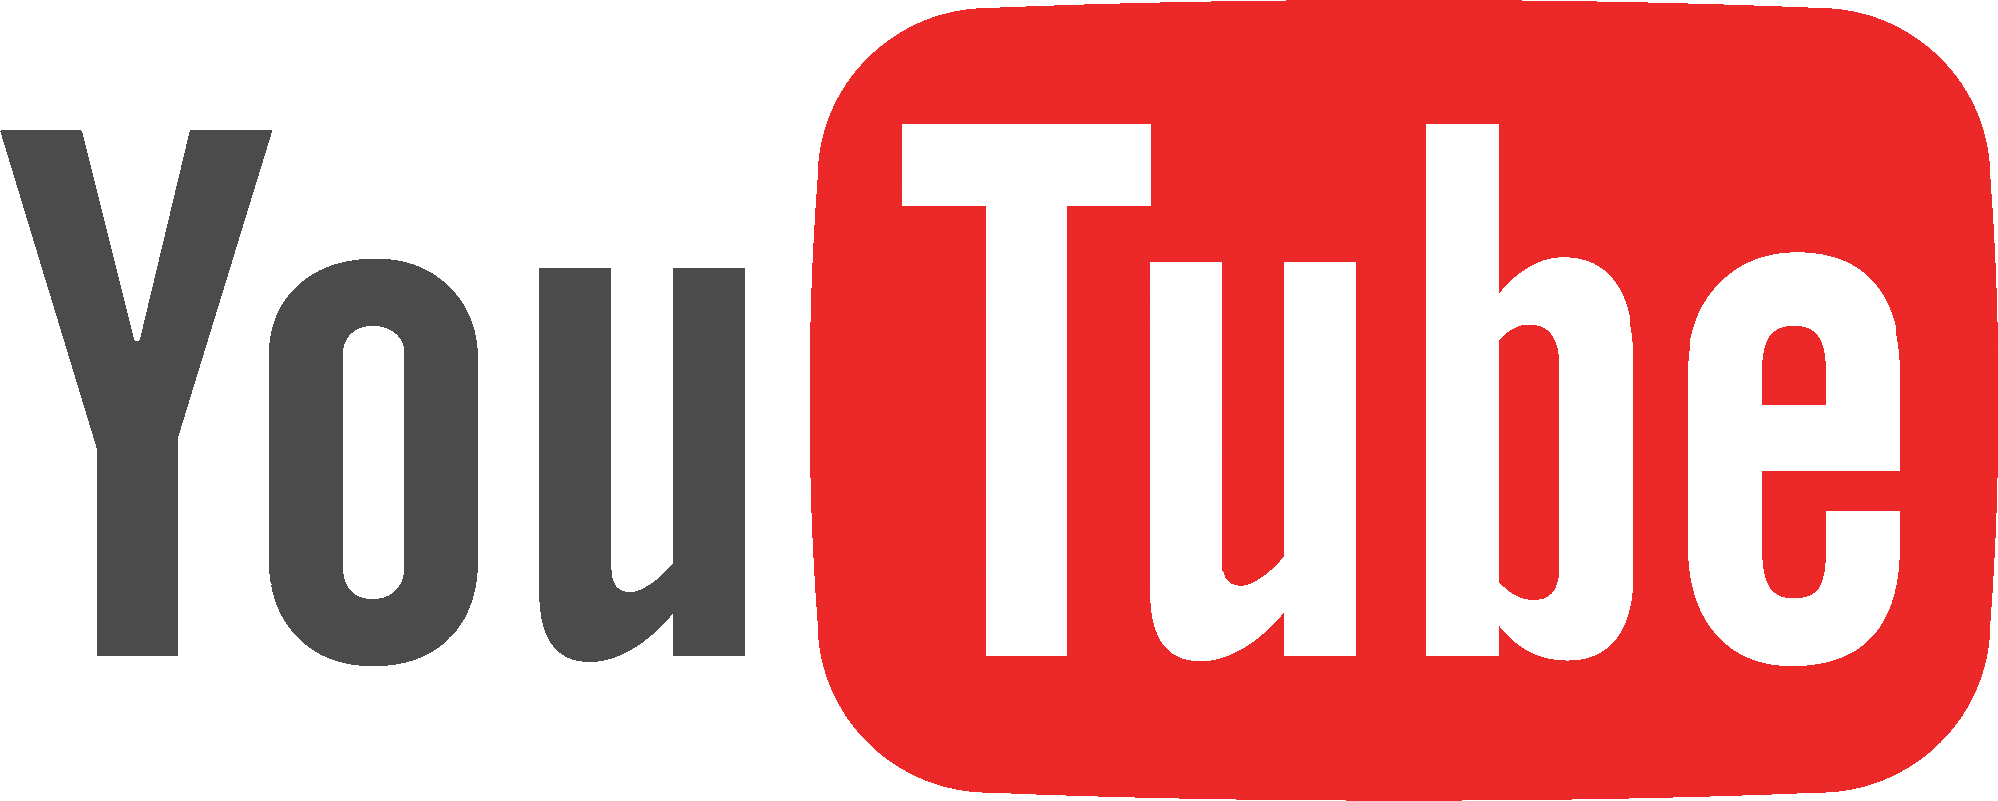 File:Solid color You Tube logo.png - PNG You